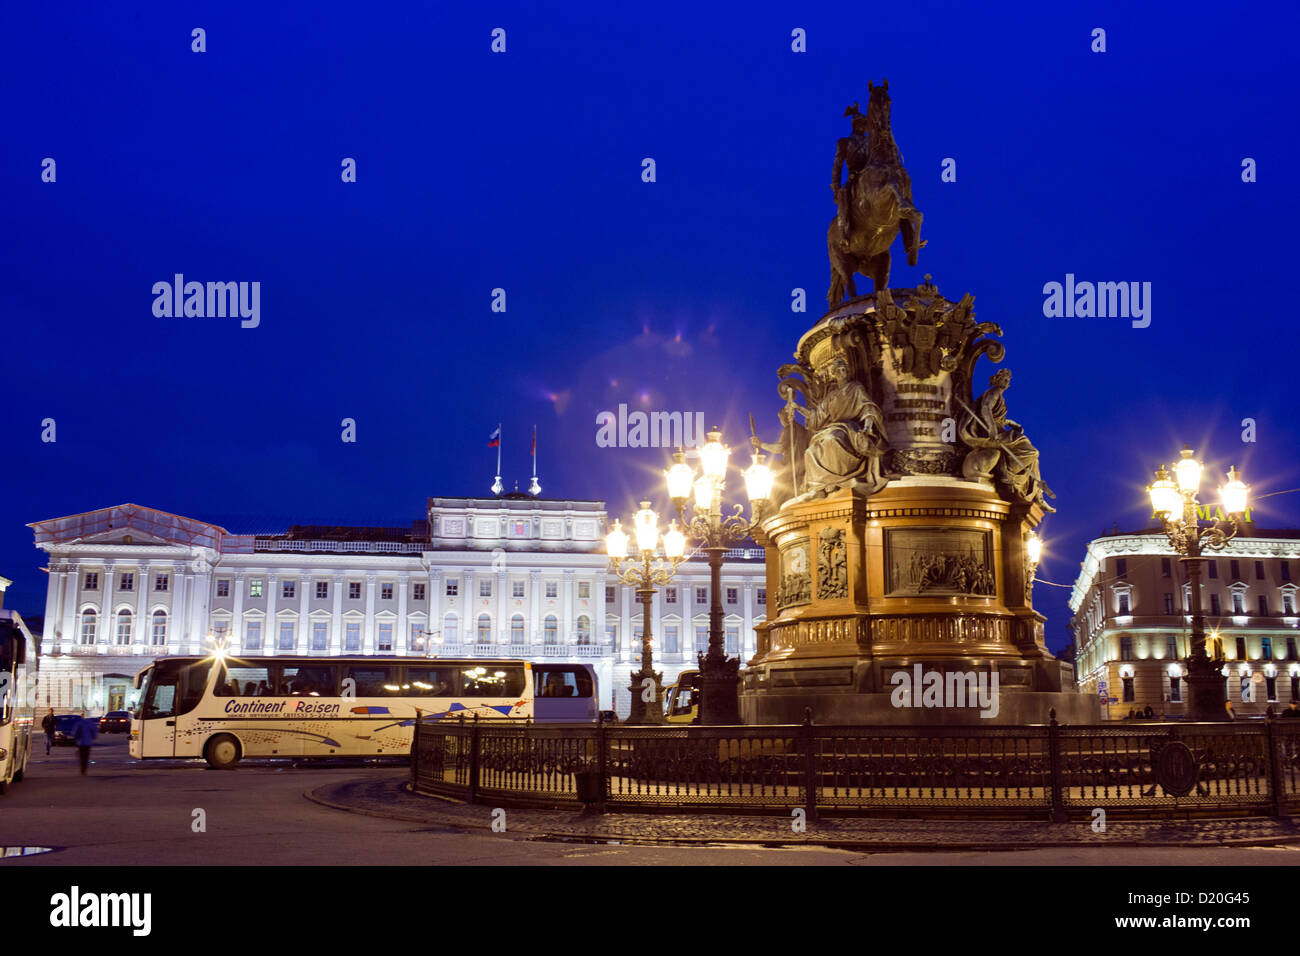 Historic buildings are pictures during the blue hour in Saint Petersburg, Russia, 18 October 2012. The entire historic Stock Photo